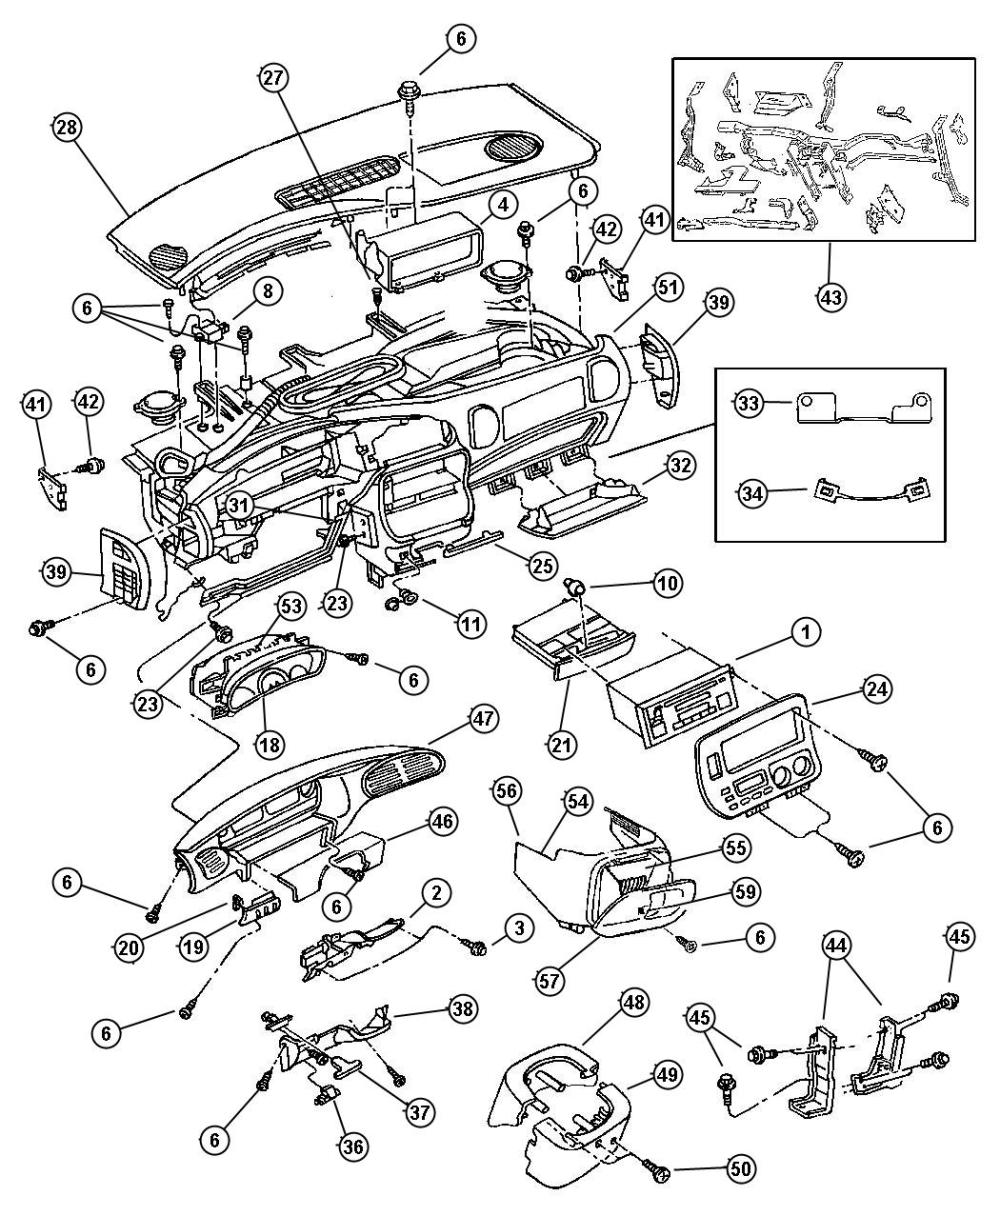 medium resolution of plymouth voyager engine diagram another blog about wiring diagram u2022 2006 chrysler 300 fuse diagram